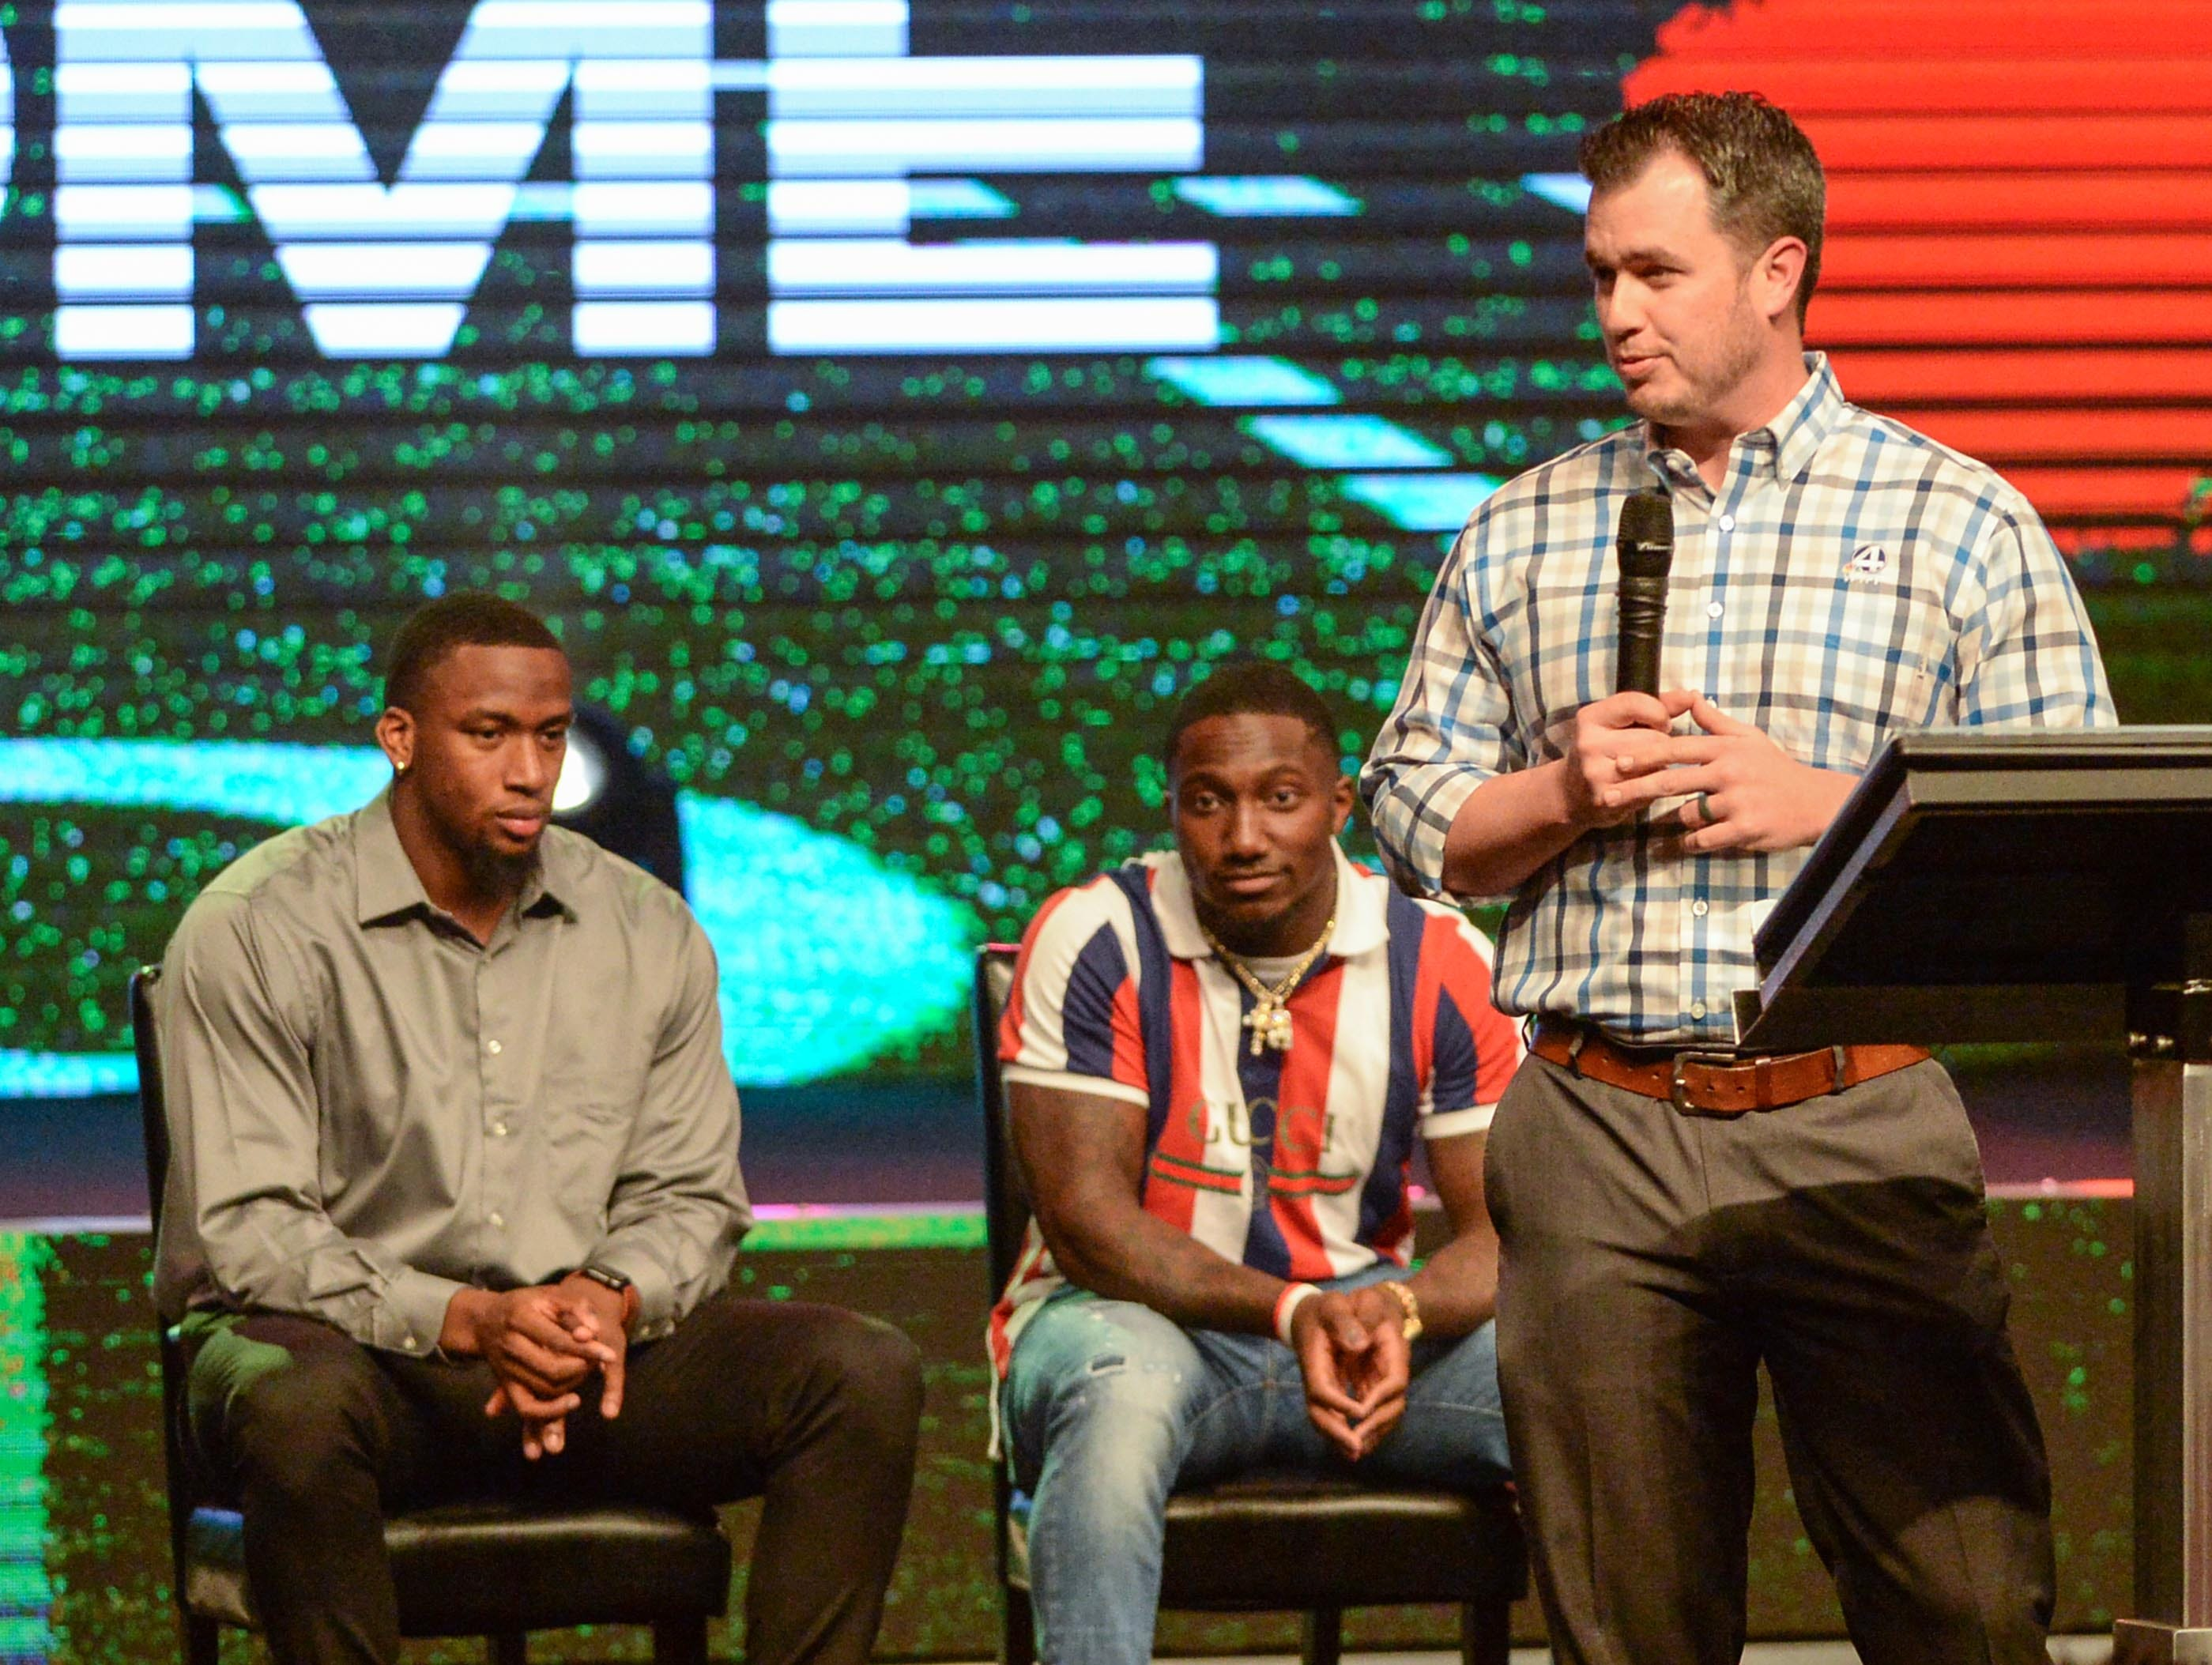 Brad Fralick, right, Sports Director for WYFF station introduces Clelin Ferrell and Deebo Samuel, former Clemson Tigers and South Carolina Gamecocks football players, during the Coaches 4 Character event at Relentless Church in Greenville Tuesday.